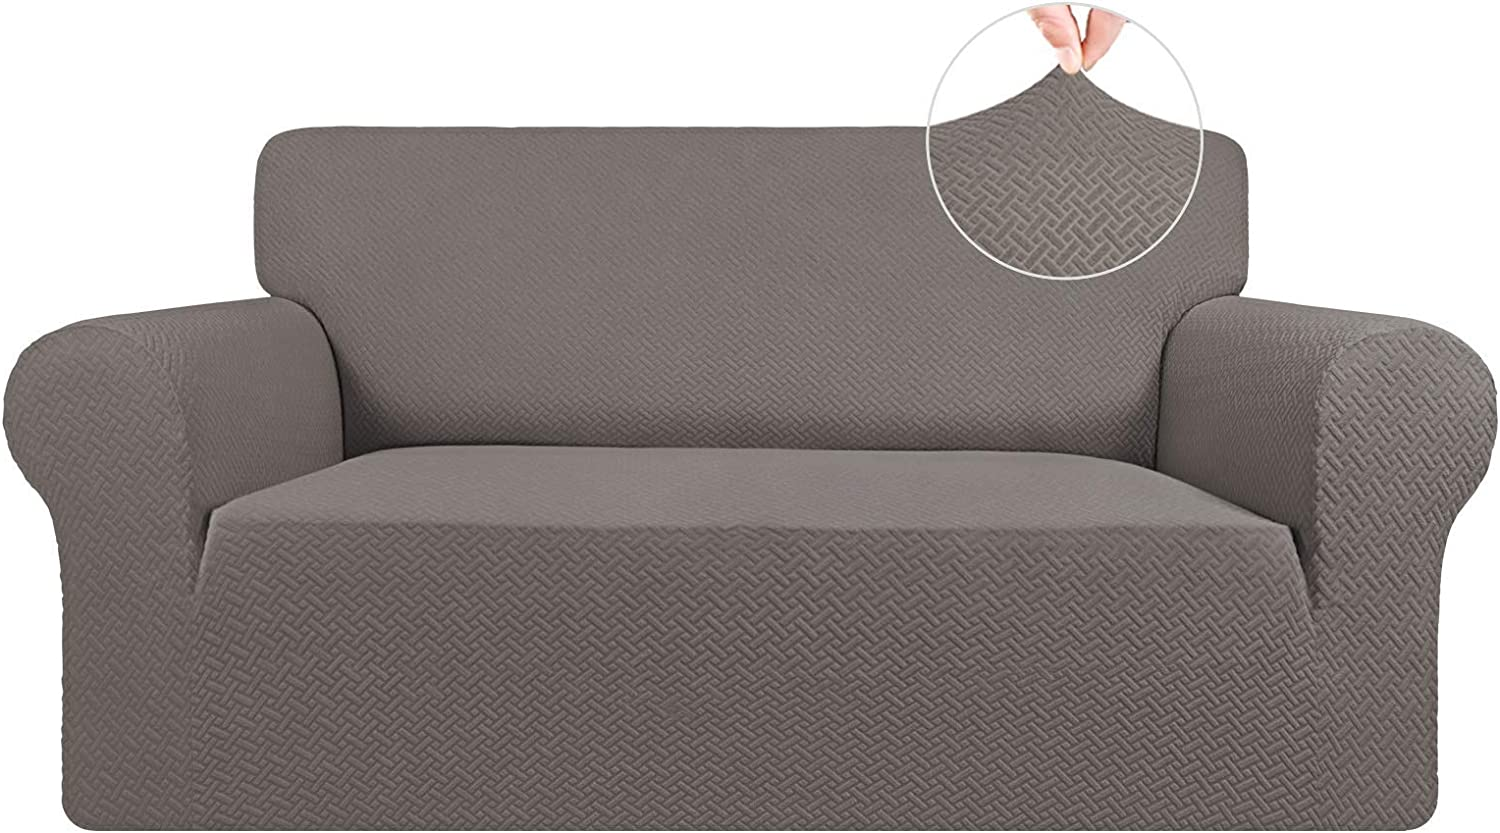 Easy-Going Stretch Jacquard Loveseat Couch Cover, 1-Piece Soft Sofa Cover, Sofa Slipcover with Anti-Slip Foams, Washable Furniture Protector for Kids, Pets ( Loveseat, Taupe)